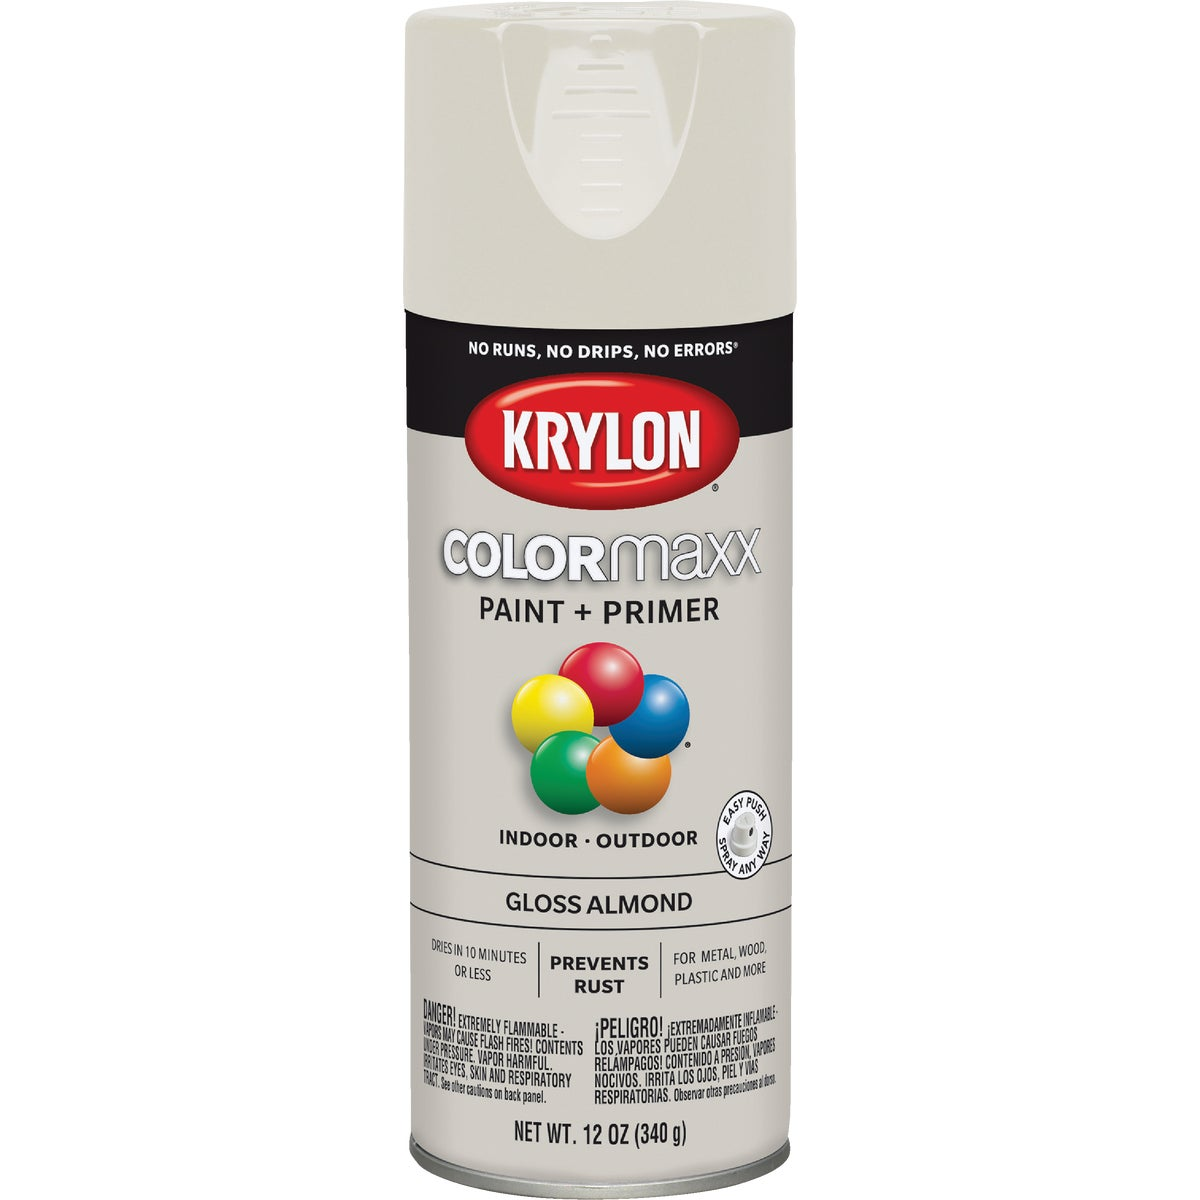 GLOSS ALMOND SPRAY PAINT - 51506 by Krylon/consumer Div